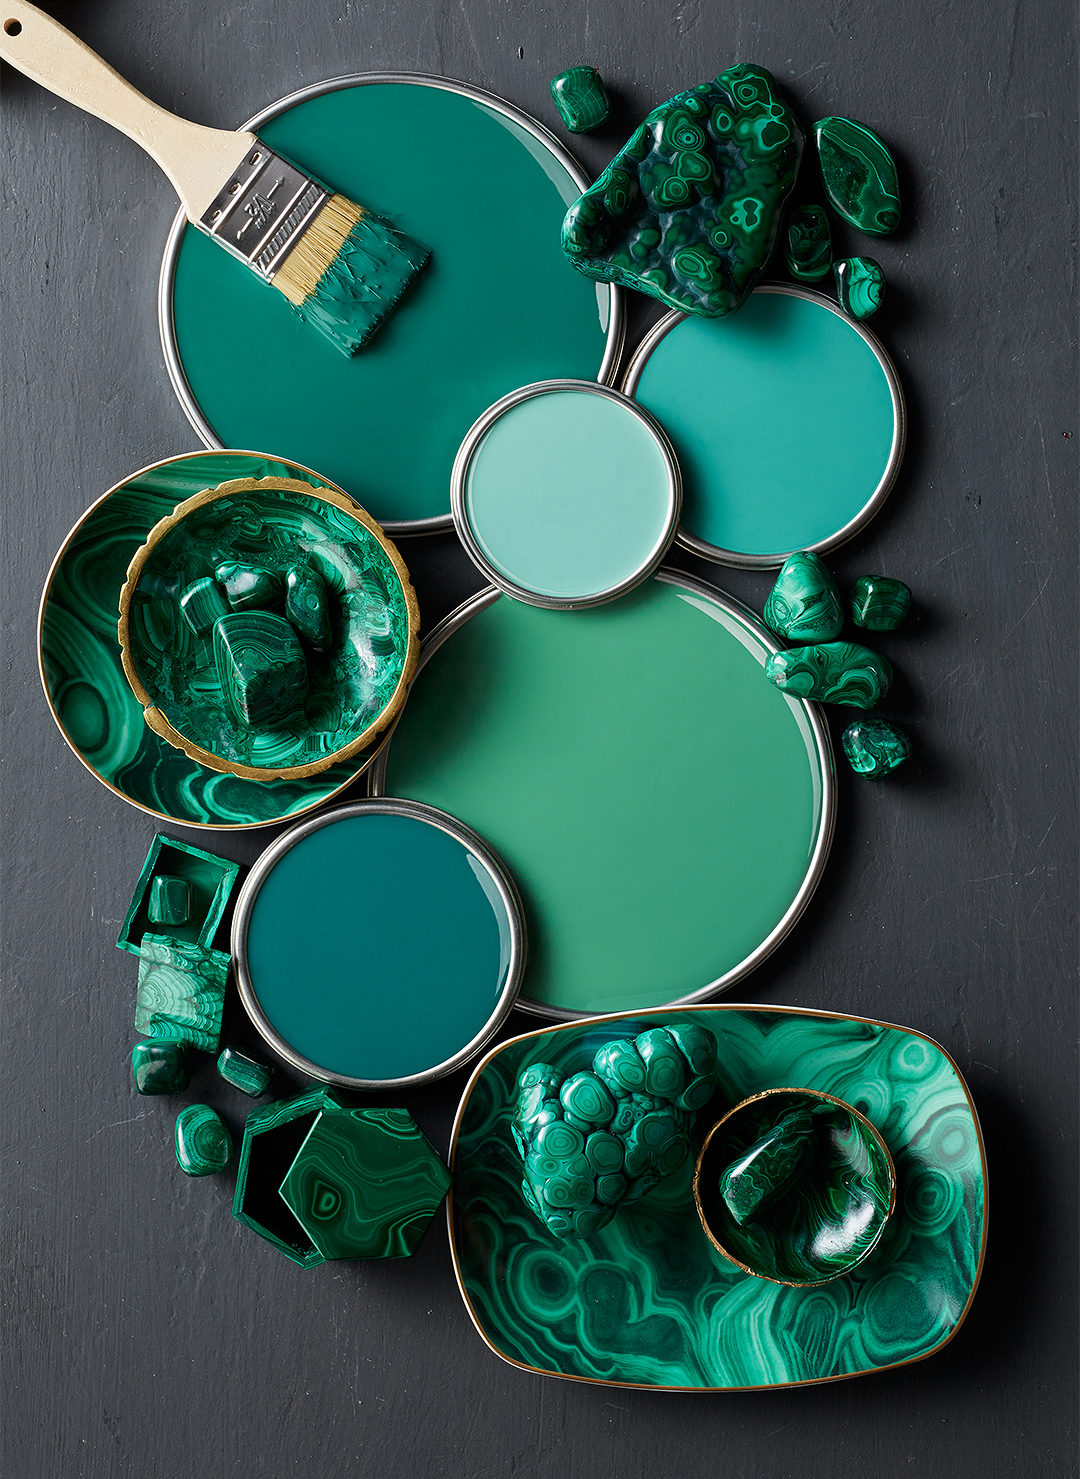 deep green can paint lids with marble jade and paintbrush